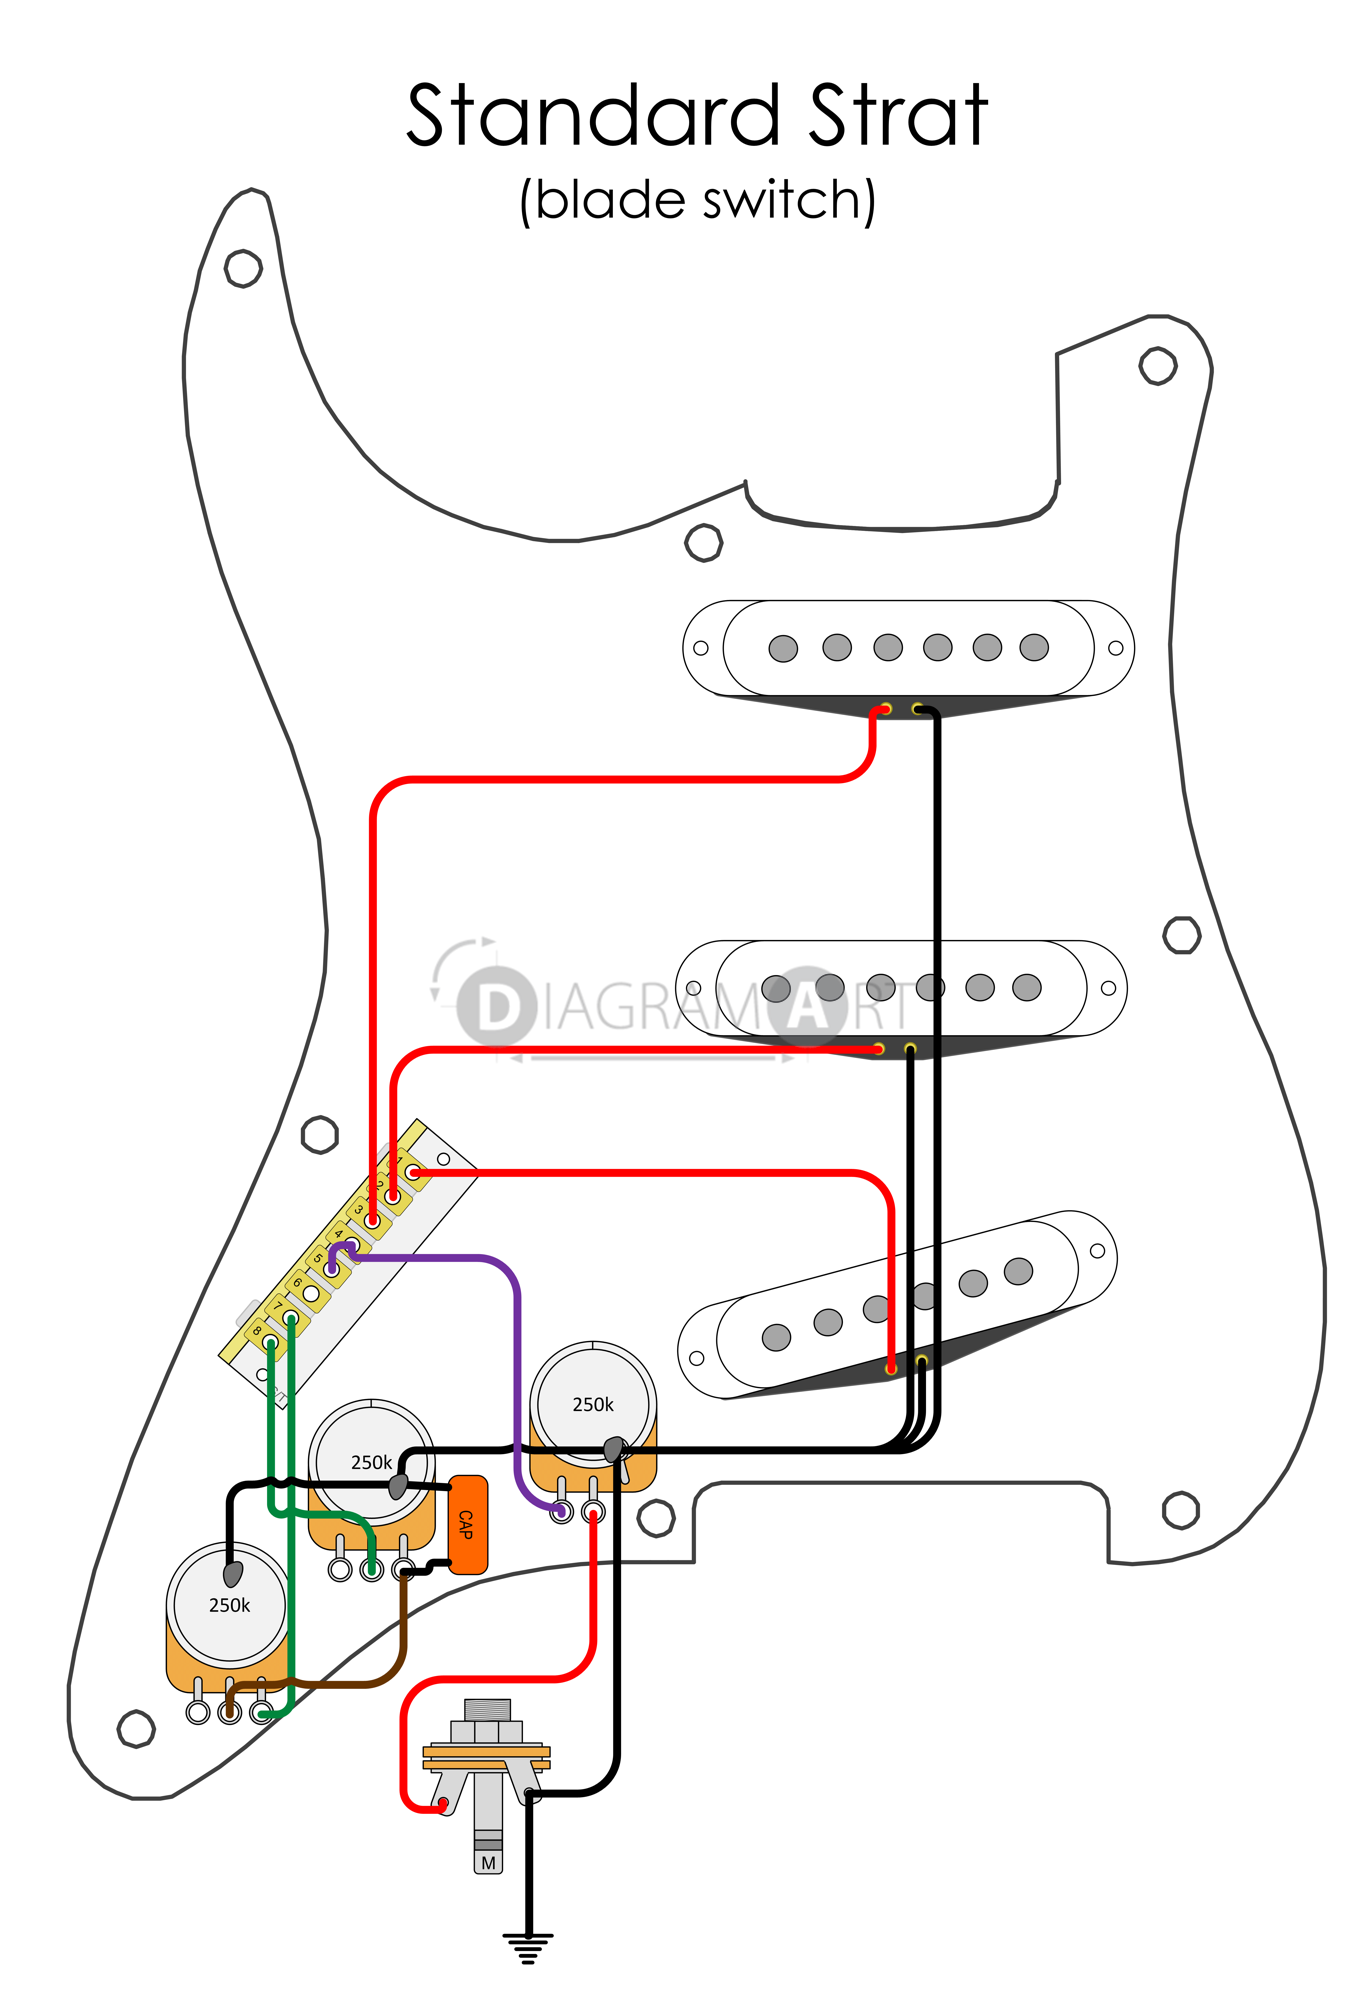 Electric Guitar Wiring Diagrams Scematic Diy Les Paul Diagram Standard Strat Blade Switch Jerry Garcia